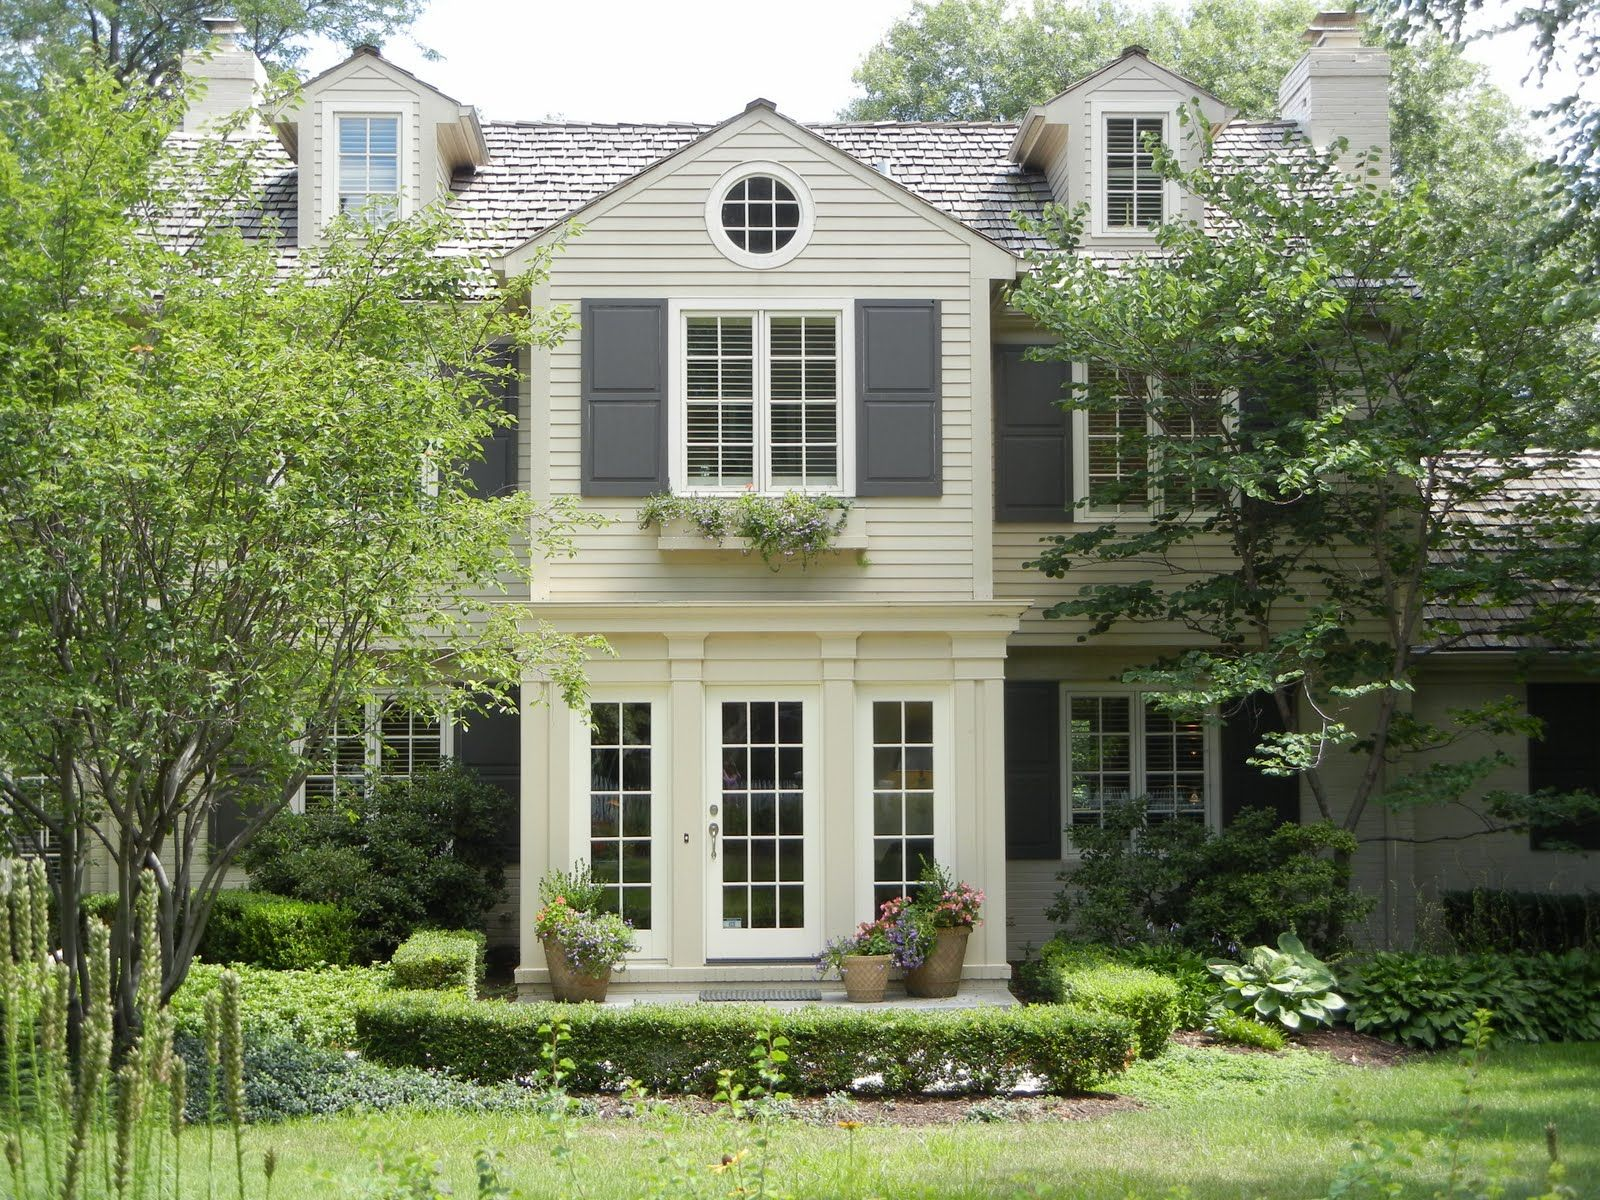 exterior colors we talked about (cream house, white trim, gray ...